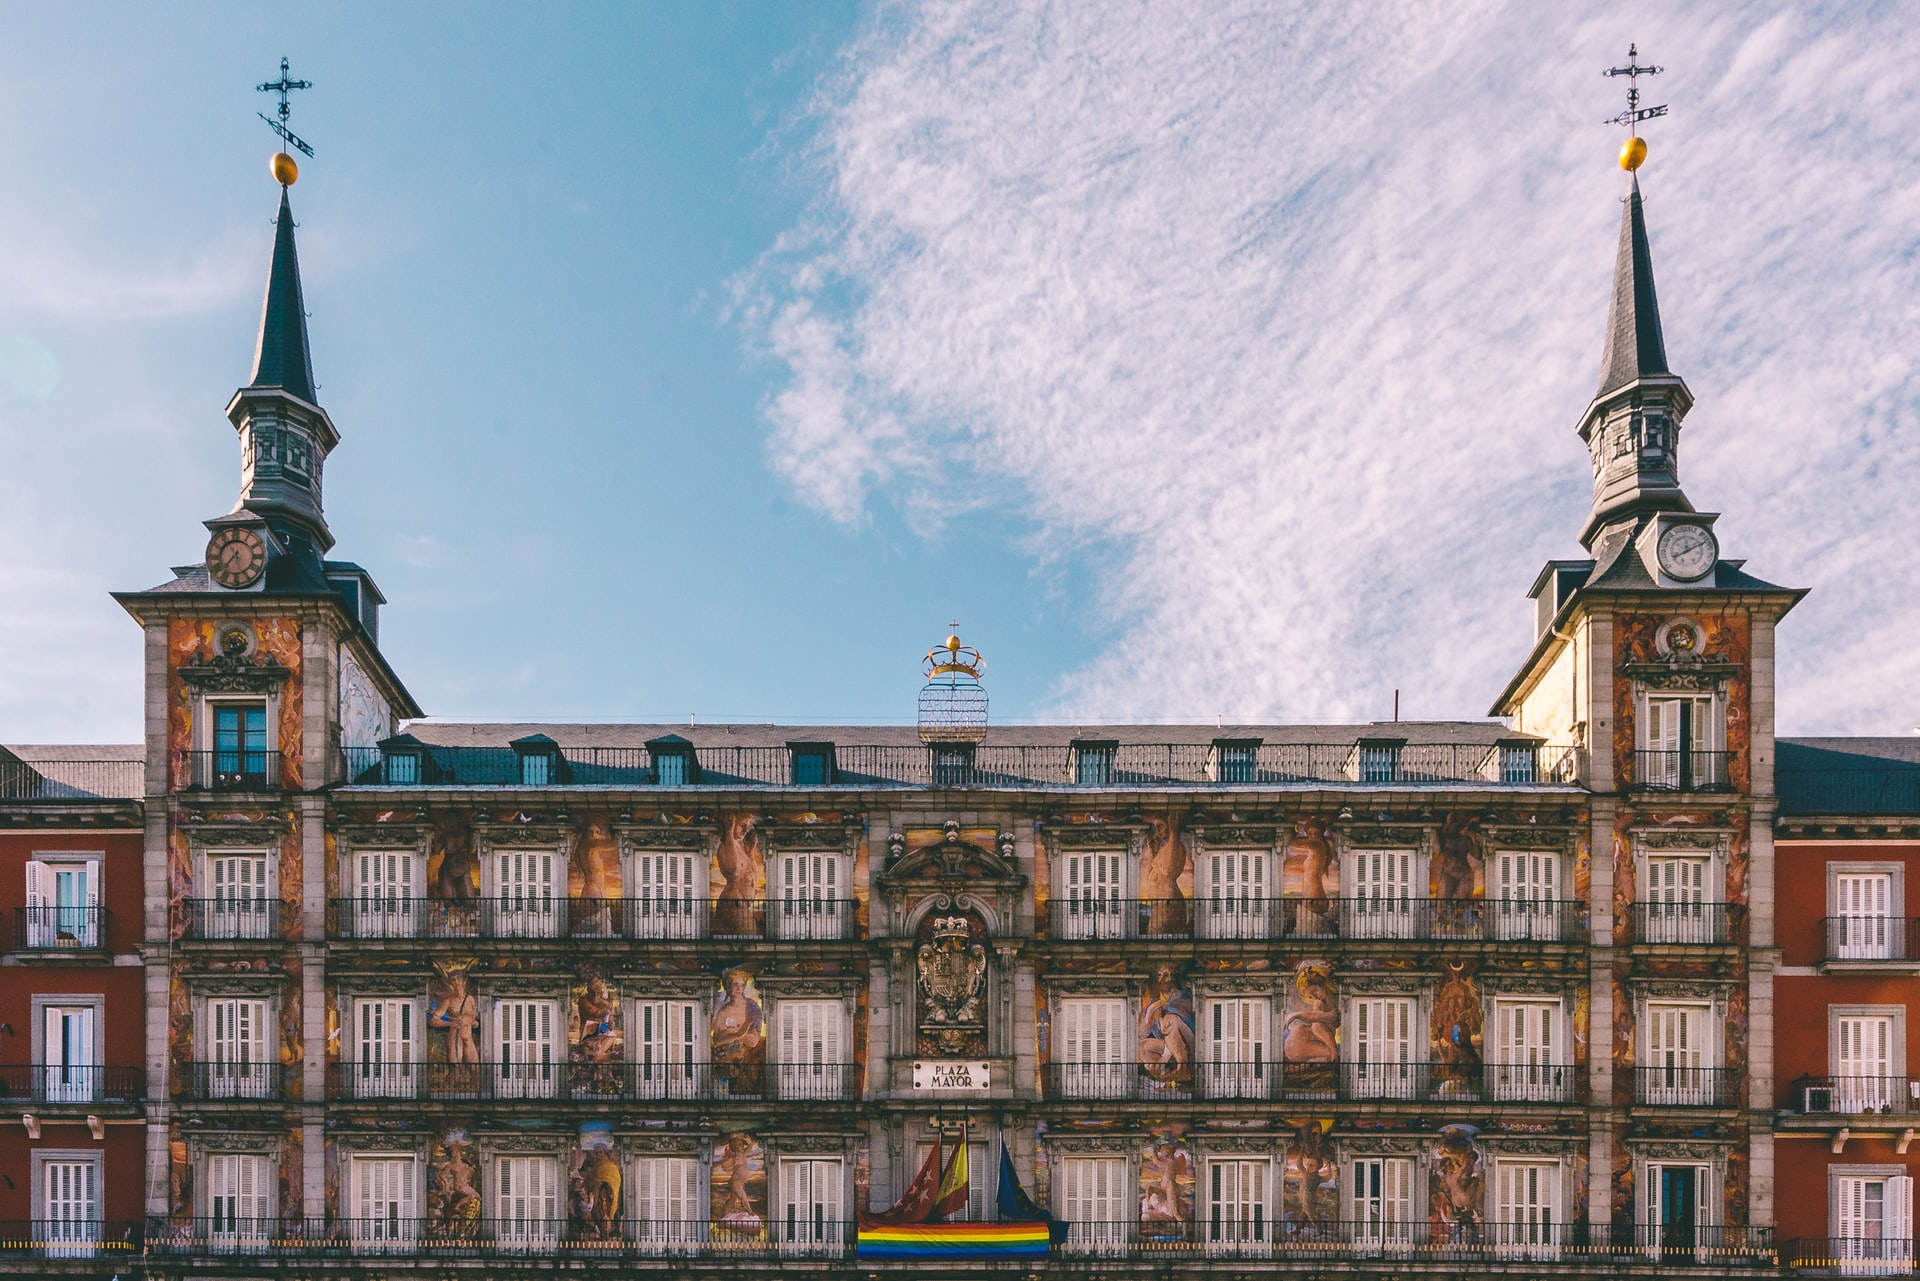 old-building-on-a-sunny-day-plaza-mayor